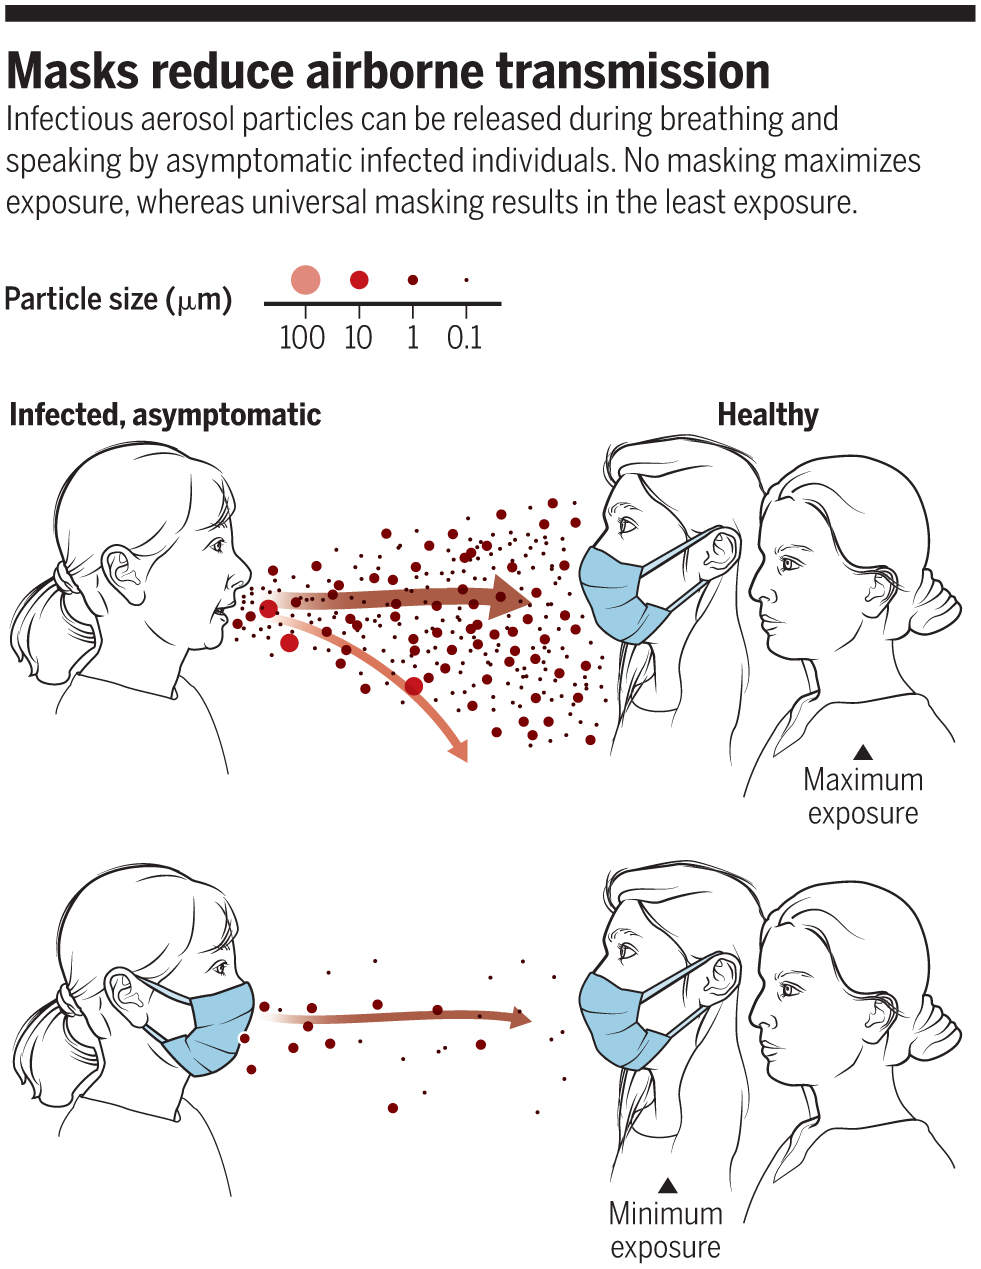 Masks reduce the transmission of virus from people who are contagious, and help protect people from air-borne viruses.